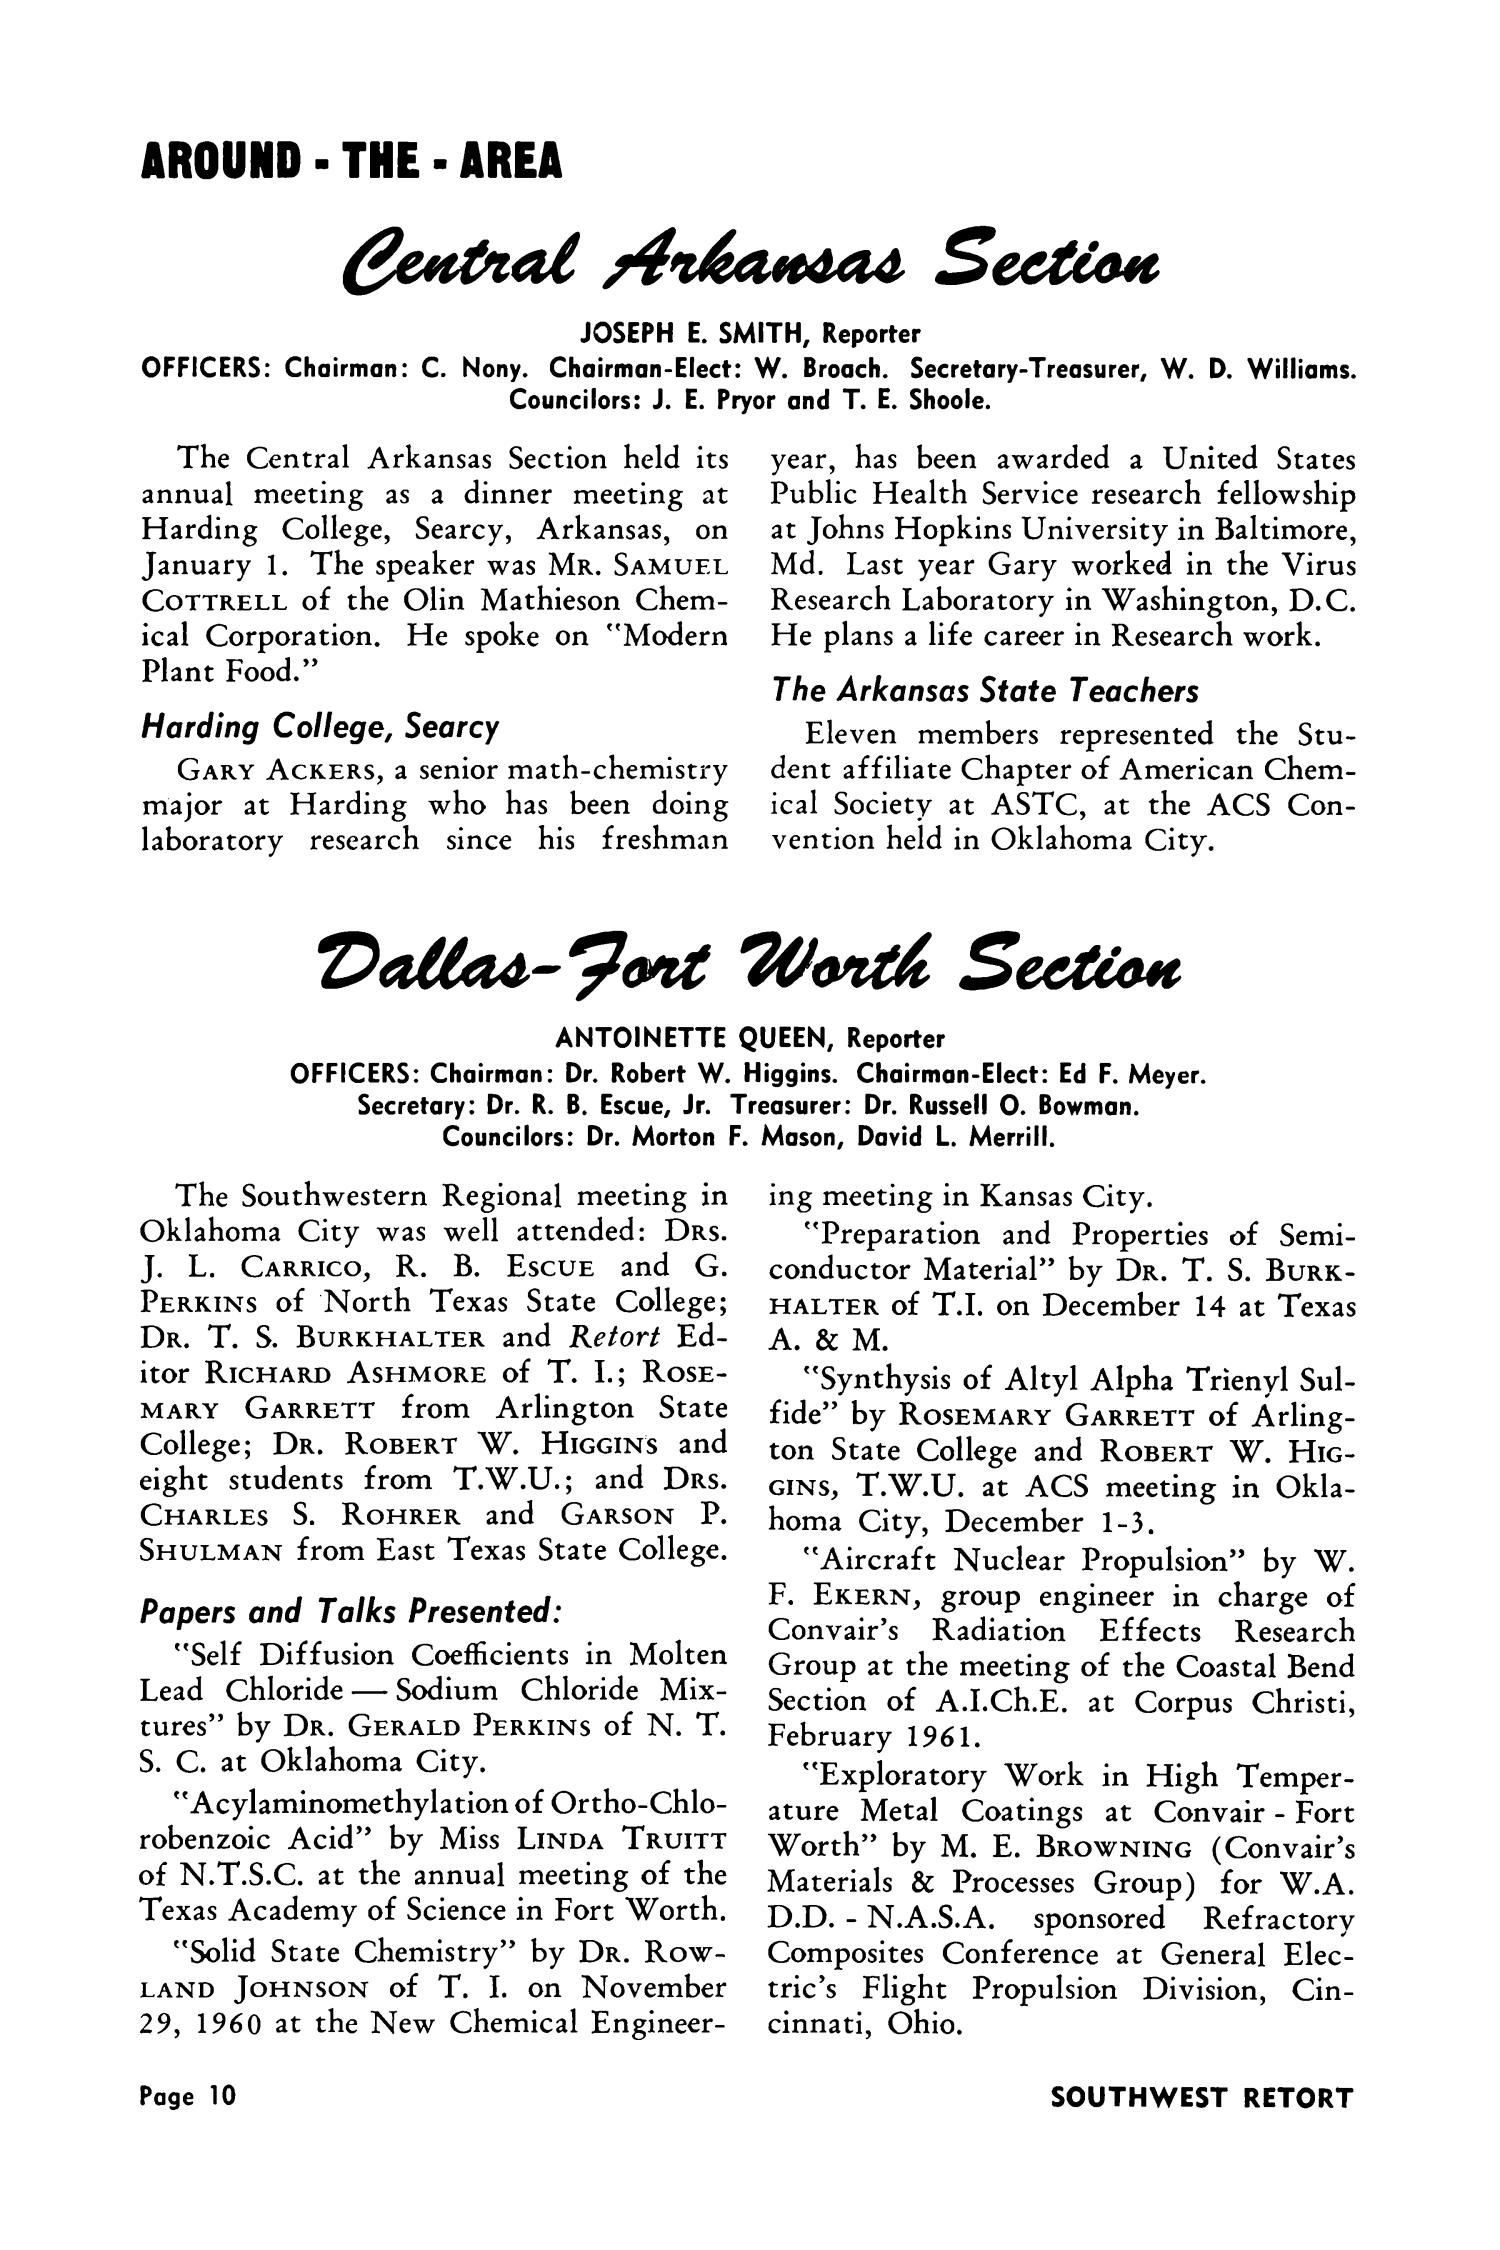 Southwest Retort, Volume 13, Number 6, February 1961                                                                                                      10